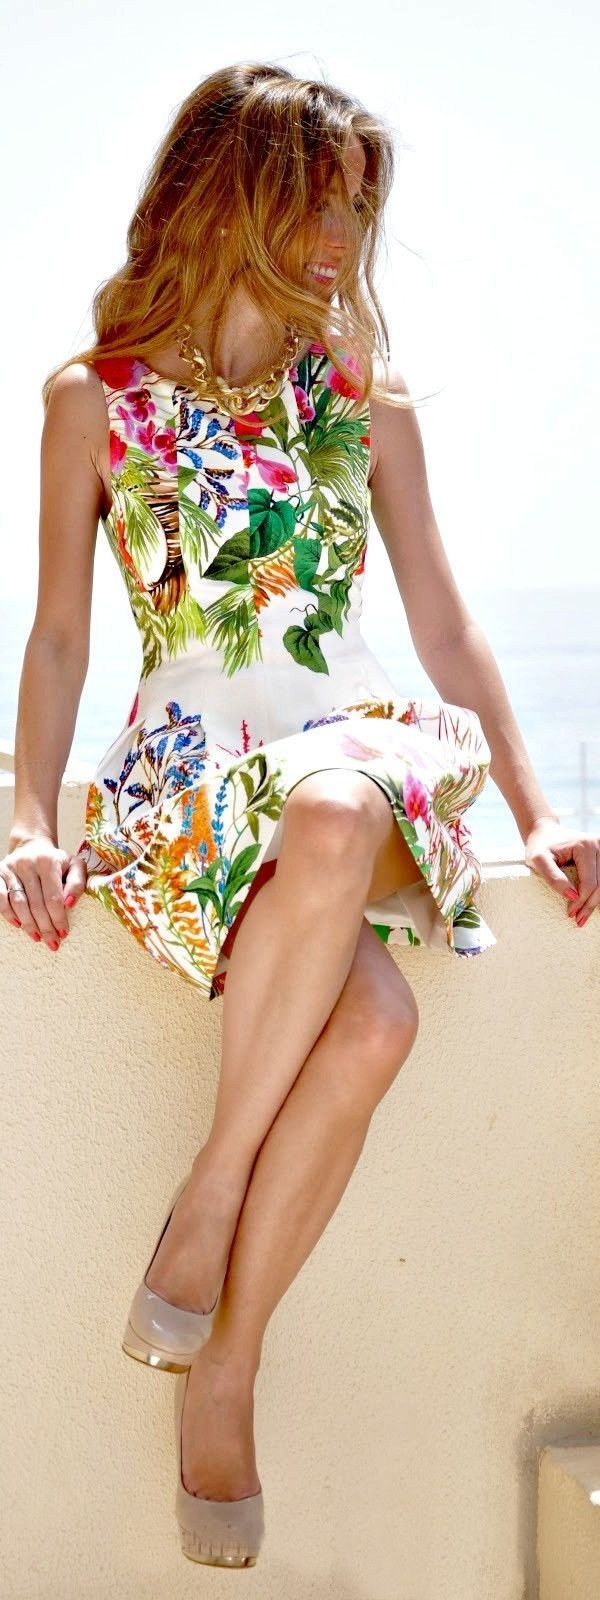 ff3045e49550 45 Top Summer Outfits That Always Look Slimming